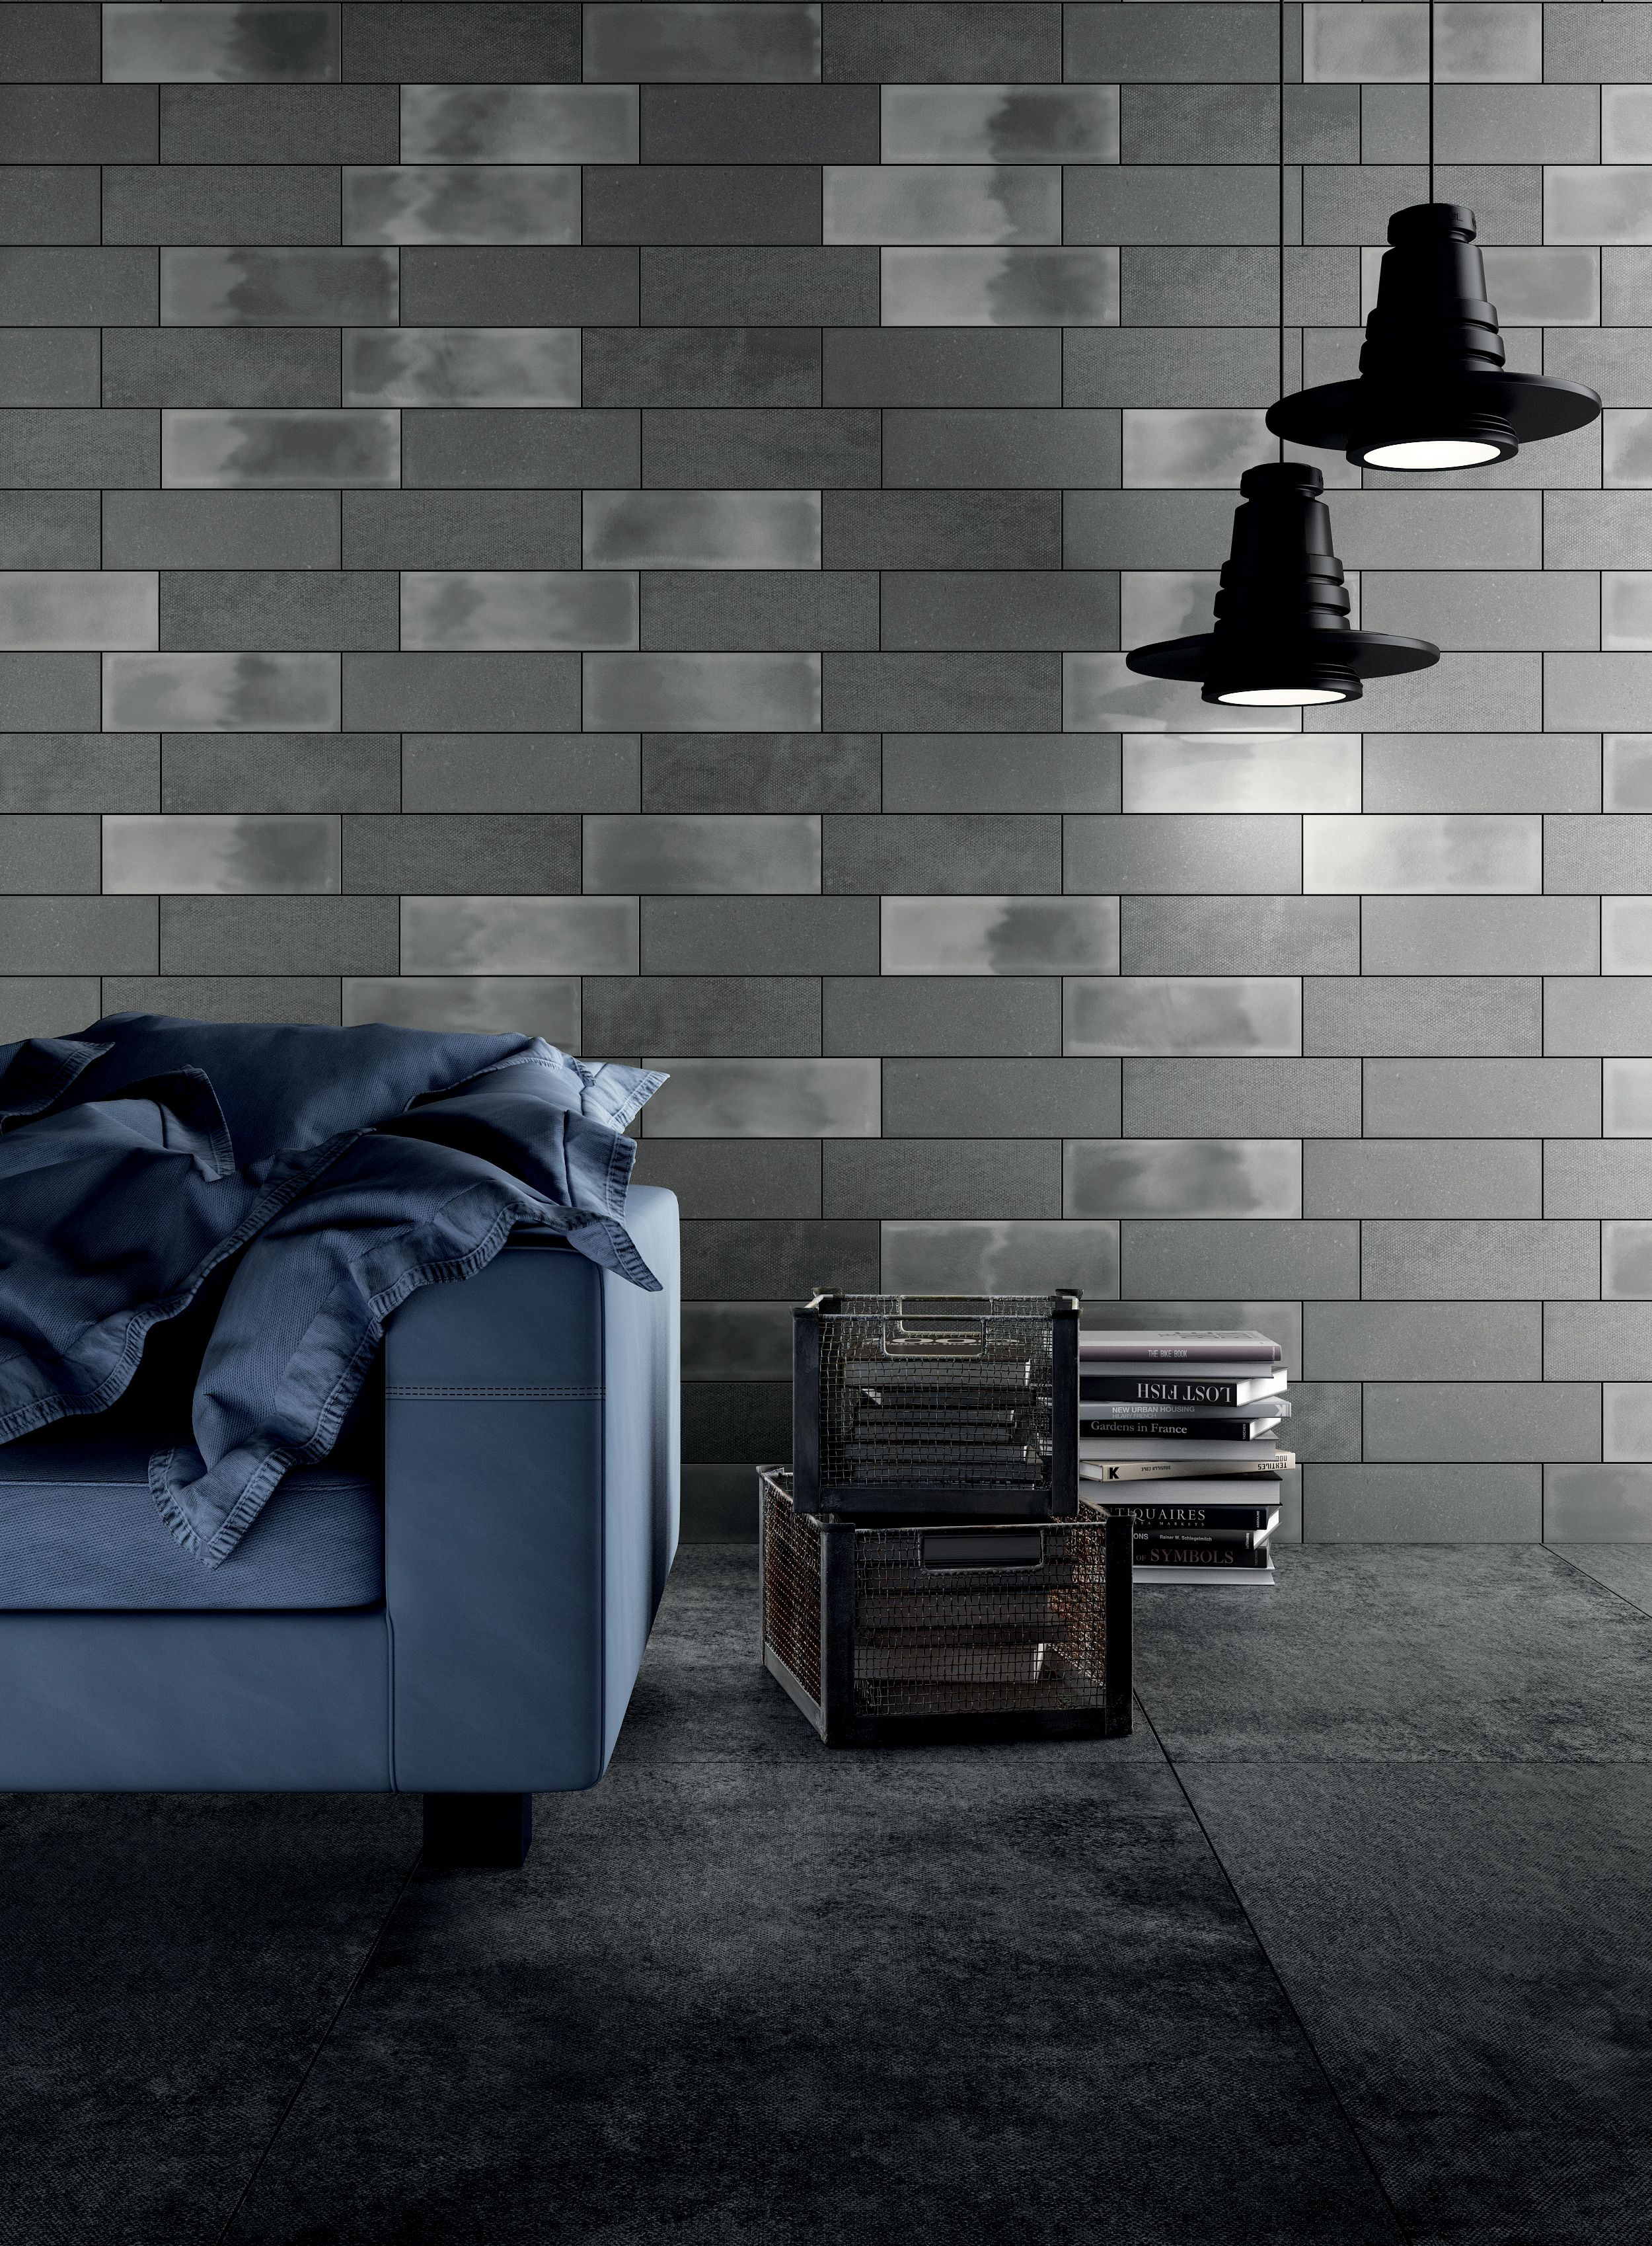 Wall iris ceramica diesel camp army canvasglazerock grey 4 x welcome to the award winning casa ceramica we are the leading independent supplier of quality bespoke tiles in manchester and across the uk dailygadgetfo Images